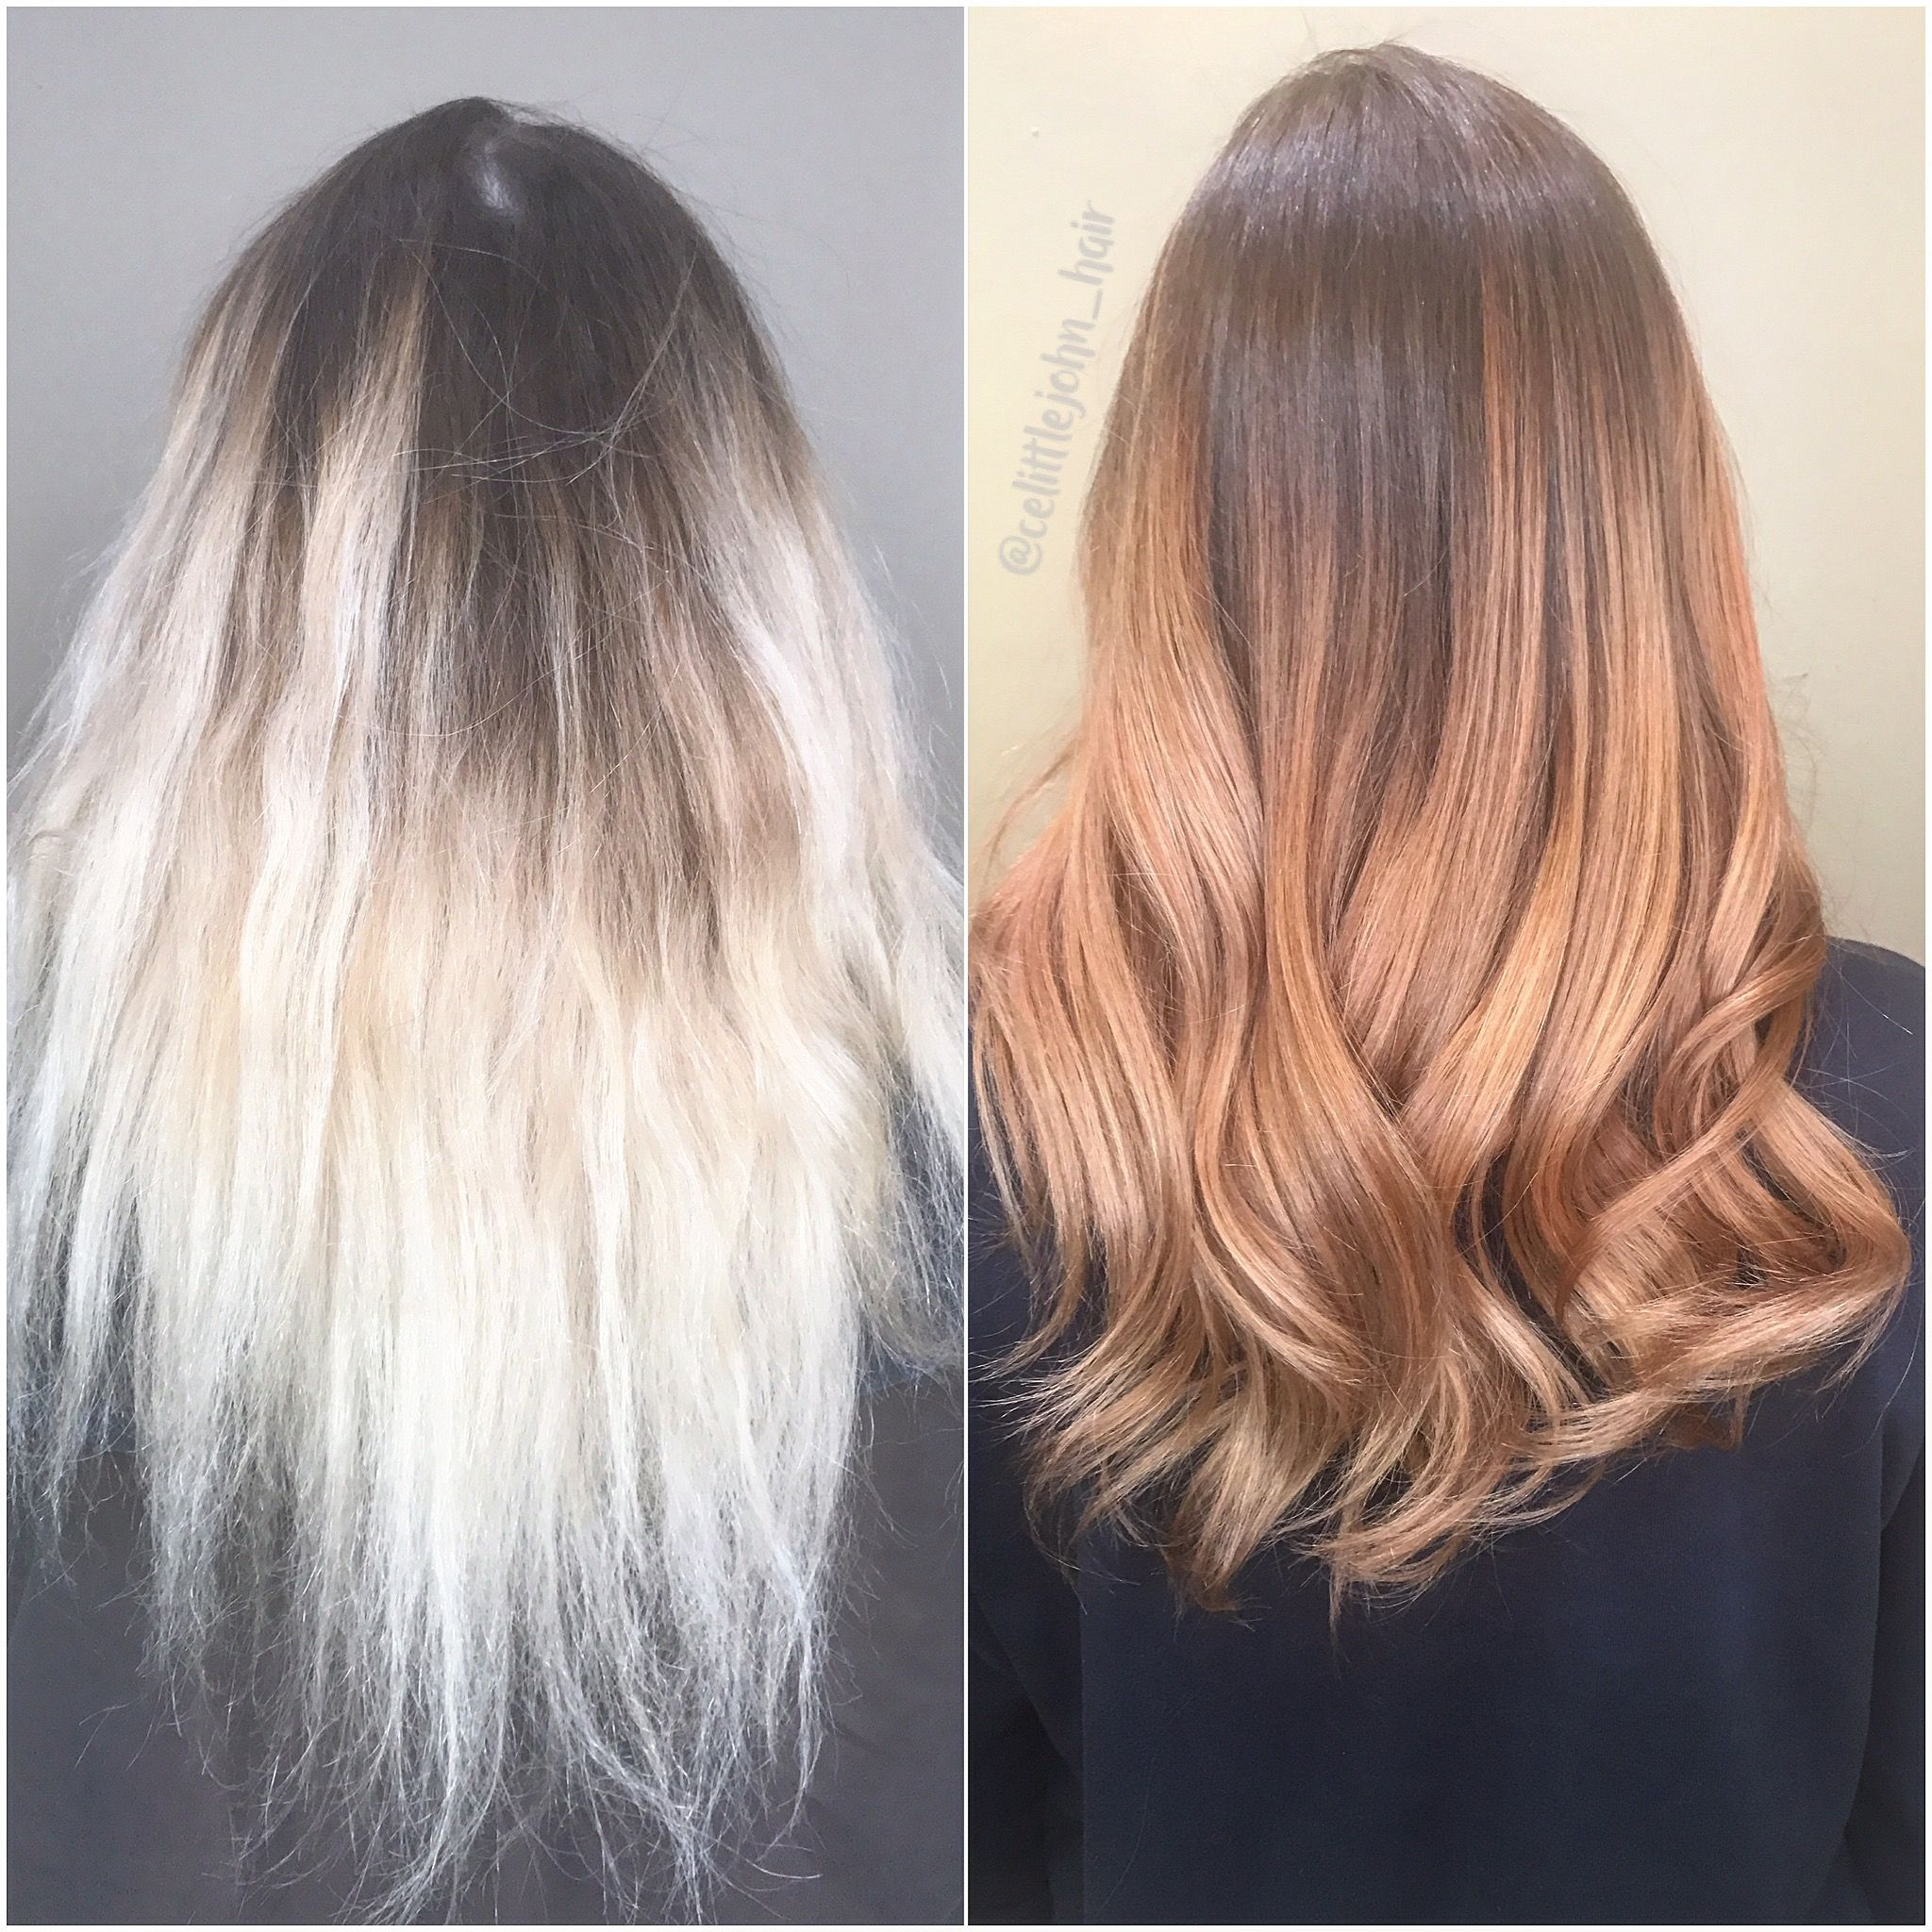 Hair Transformation From Blonde To Copper Ombre Color Correction From Fried Blonde To Silky